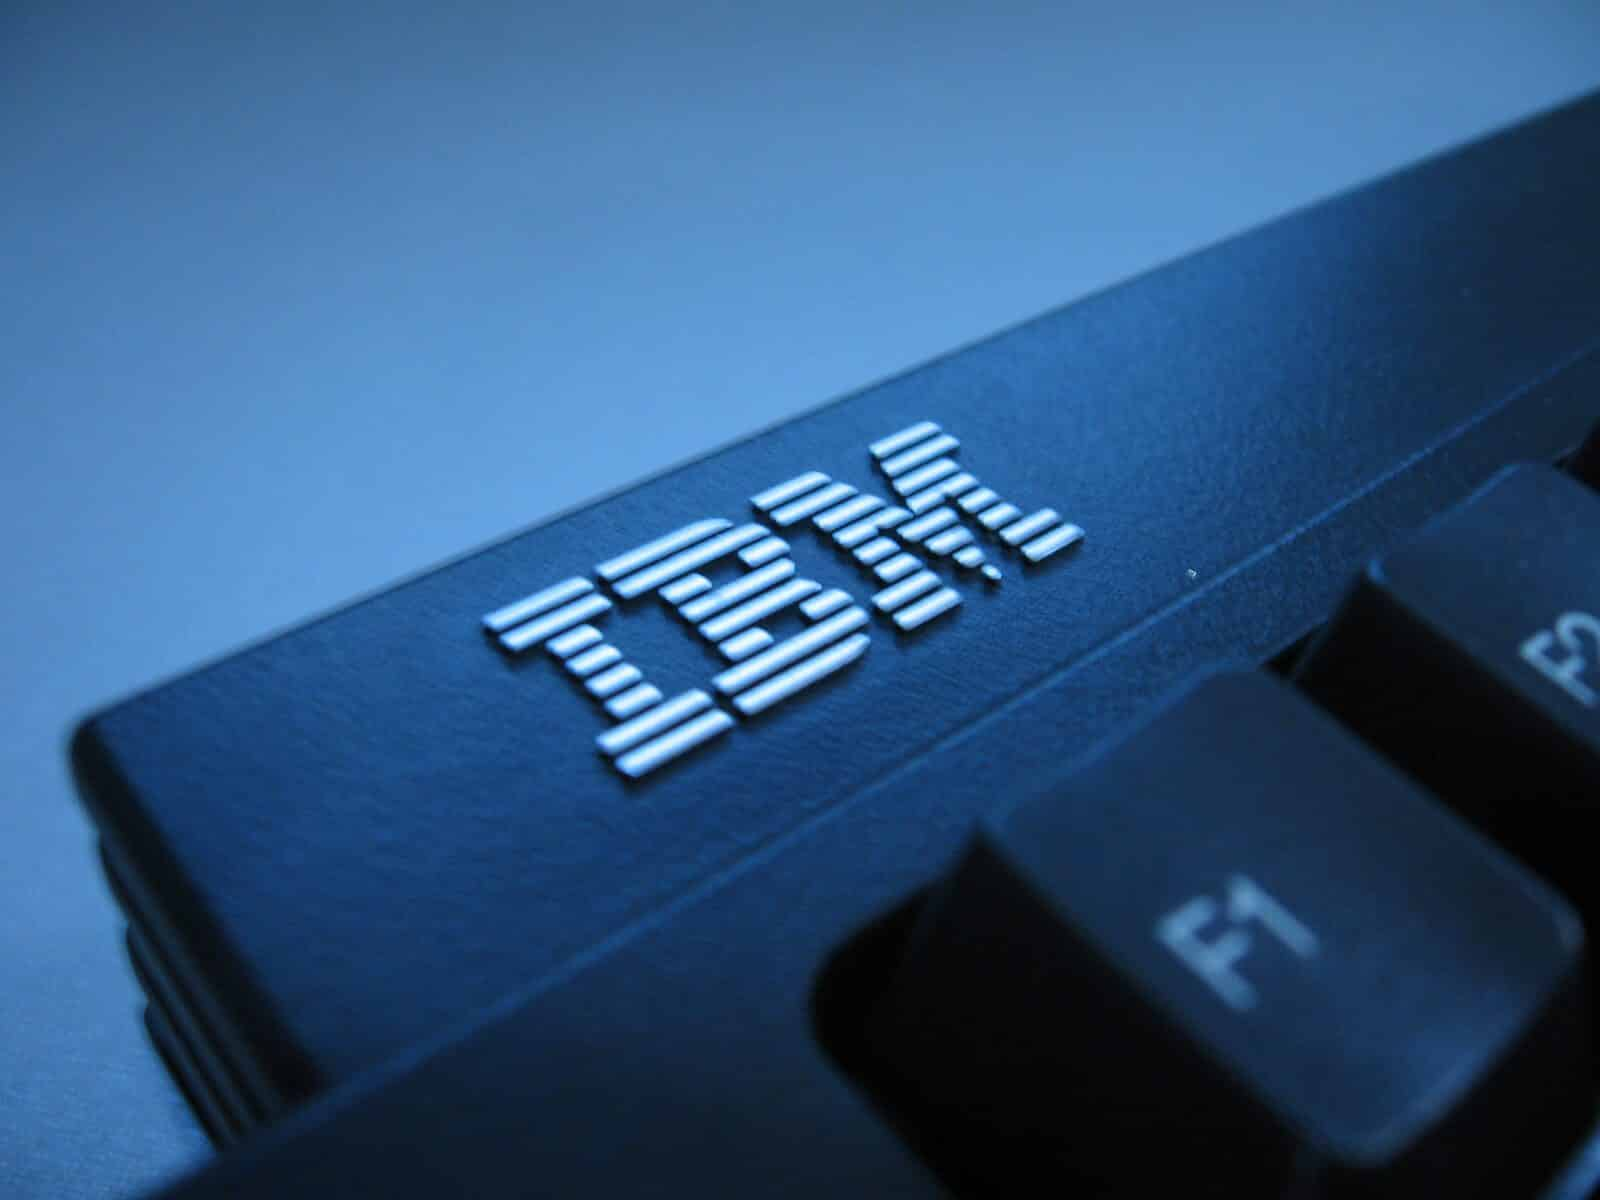 IBM-keyboard-Esteban-Maringolo-Flickr